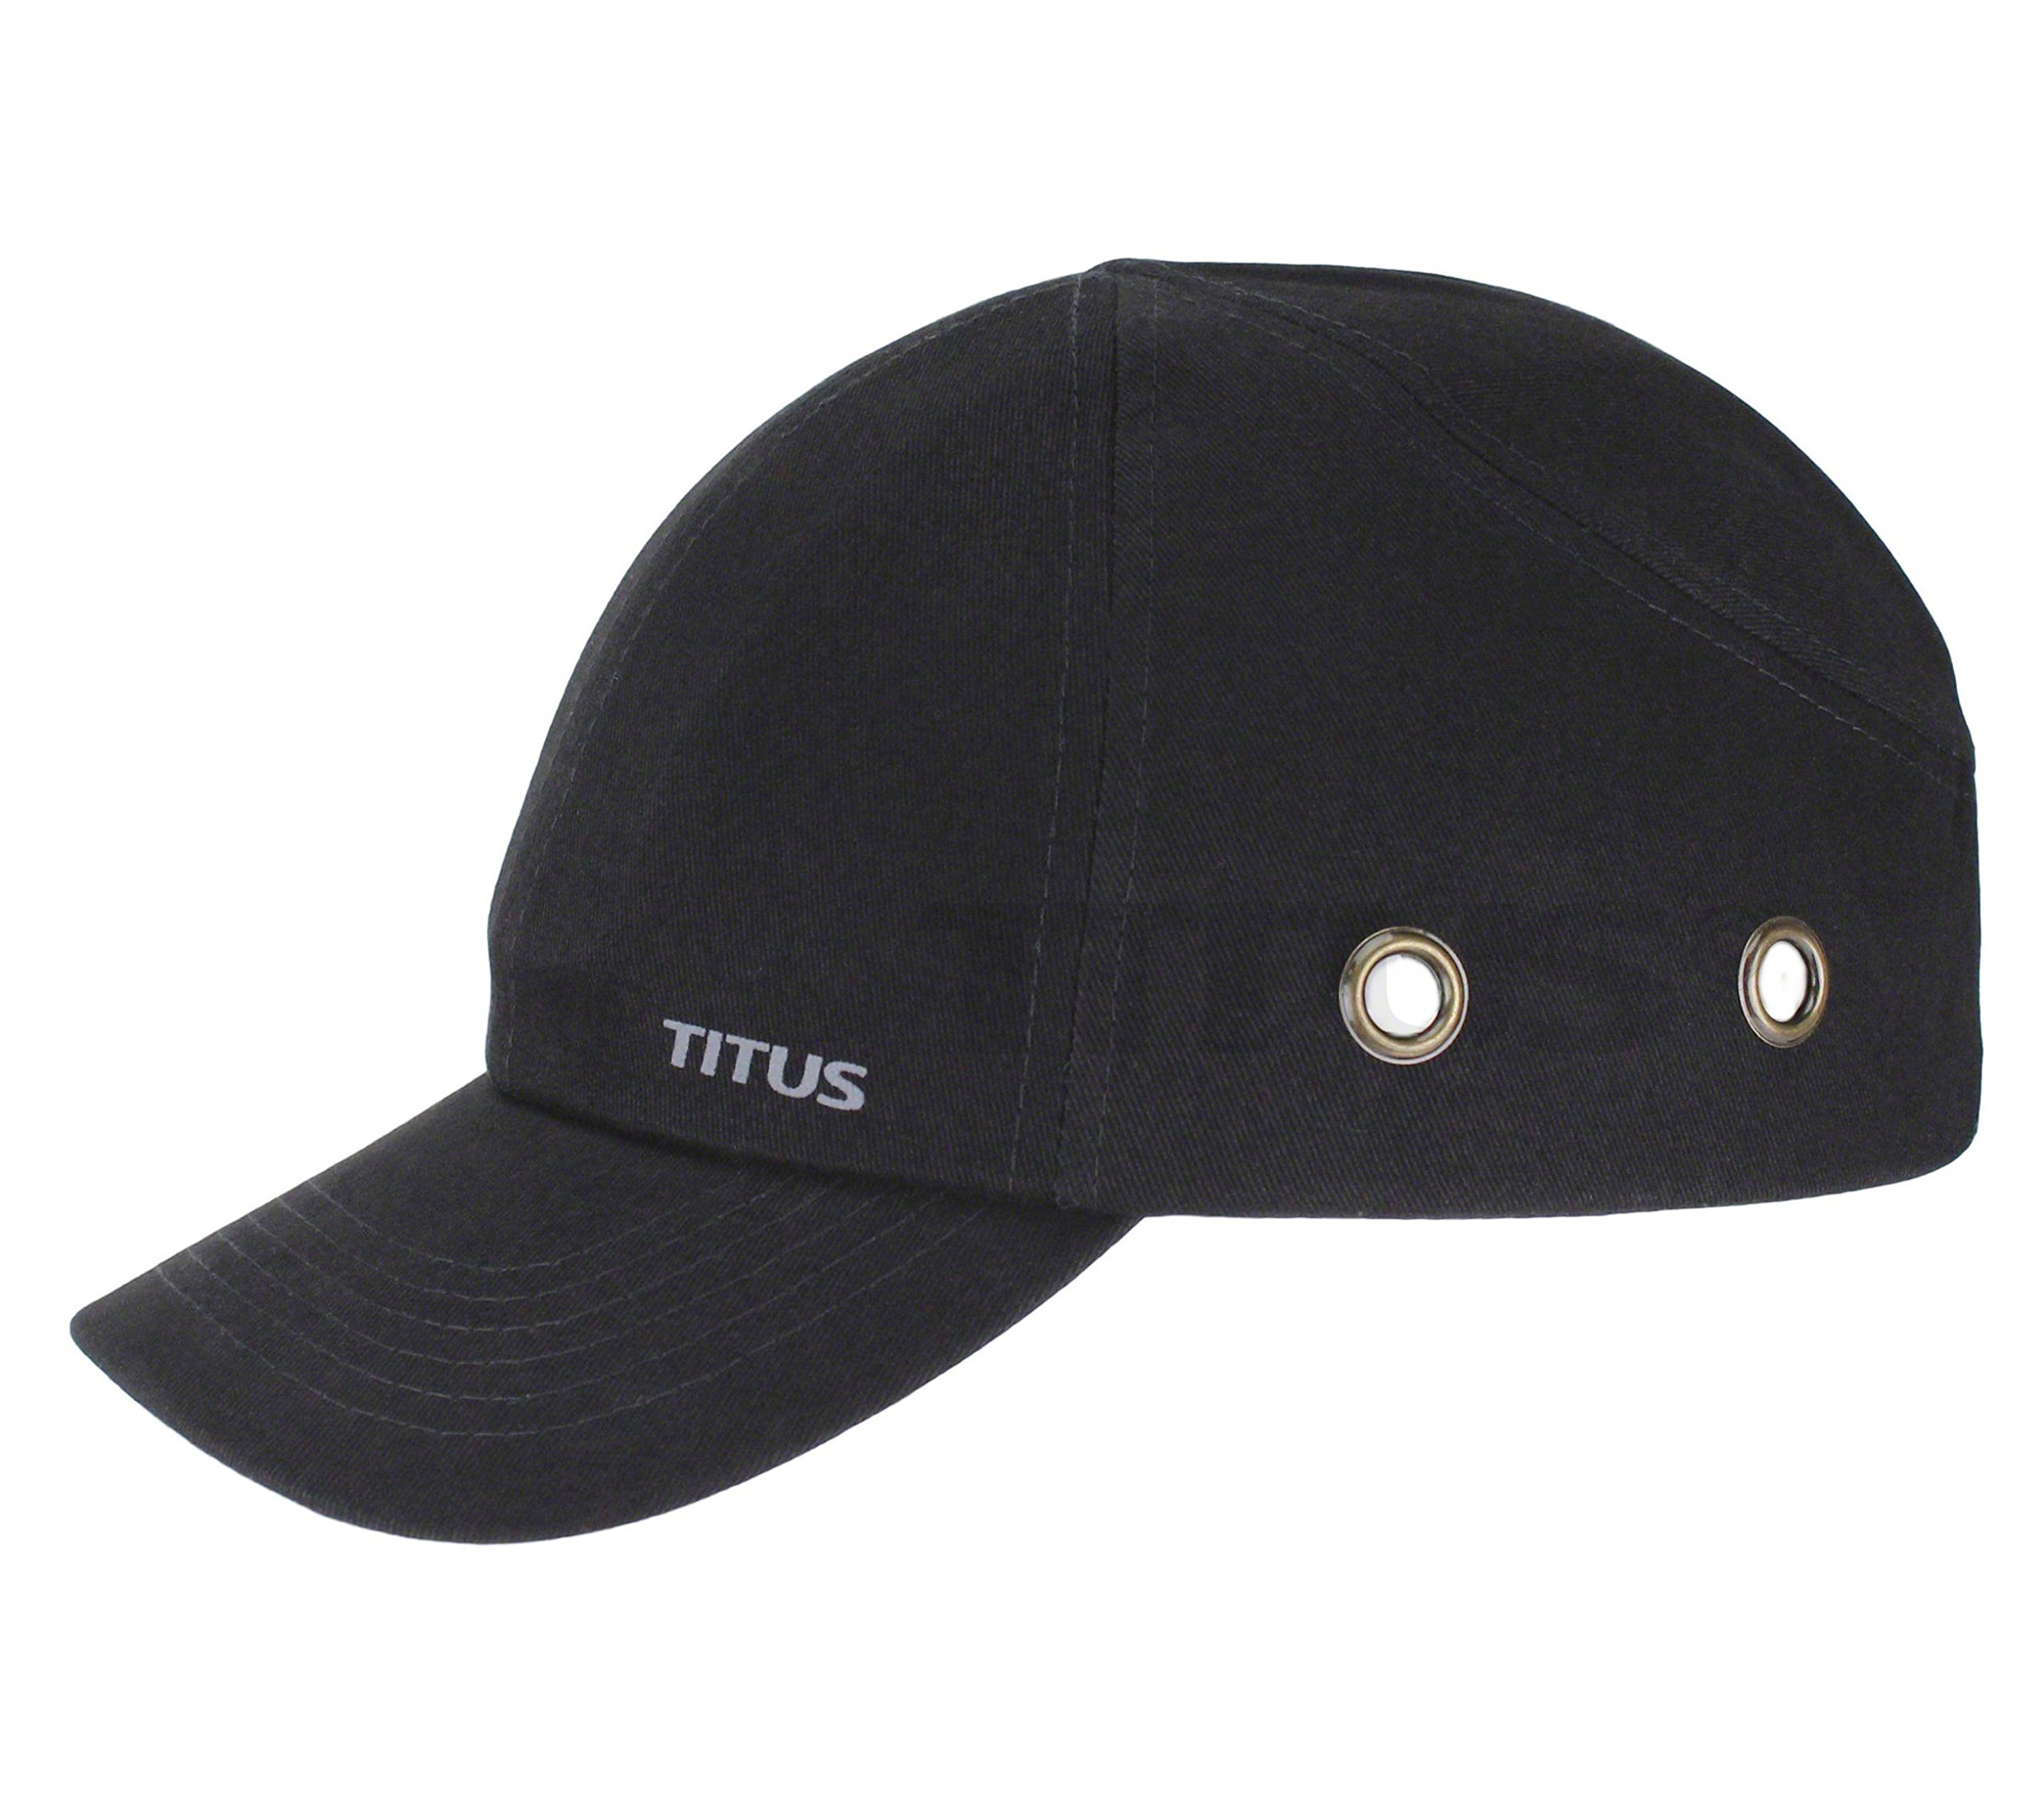 Titus Lightweight Safety Bump Cap - Baseball Style Protective Hat (Black)